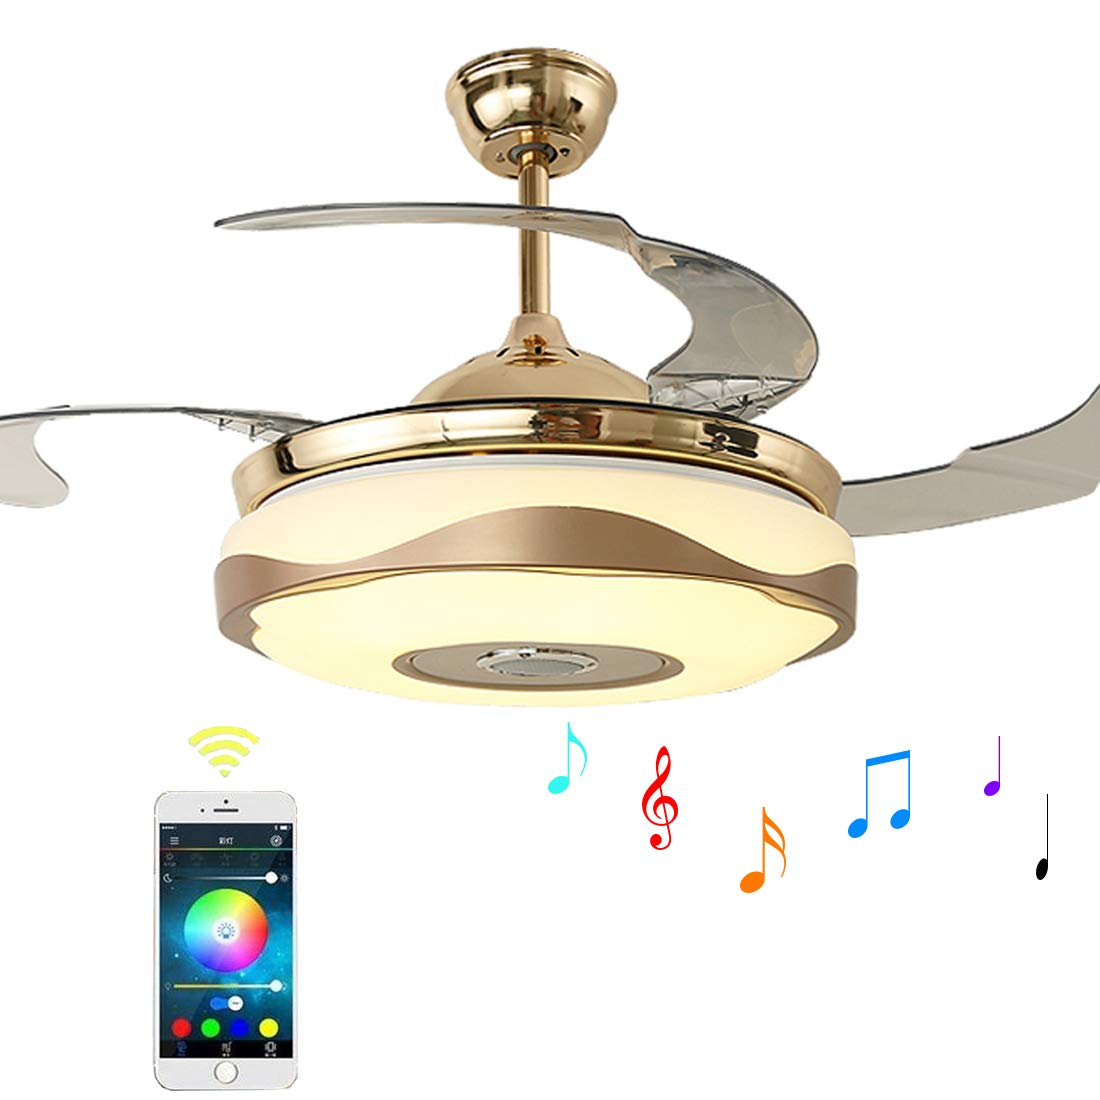 Moerun 42 Inch Ceiling Fans With Lights Bluetooth Speaker Modern Light Wiring Diagram The Main Problem Invisible Leaf Chandelier Fan Remote Control For Bedroom Living Room 7 Color